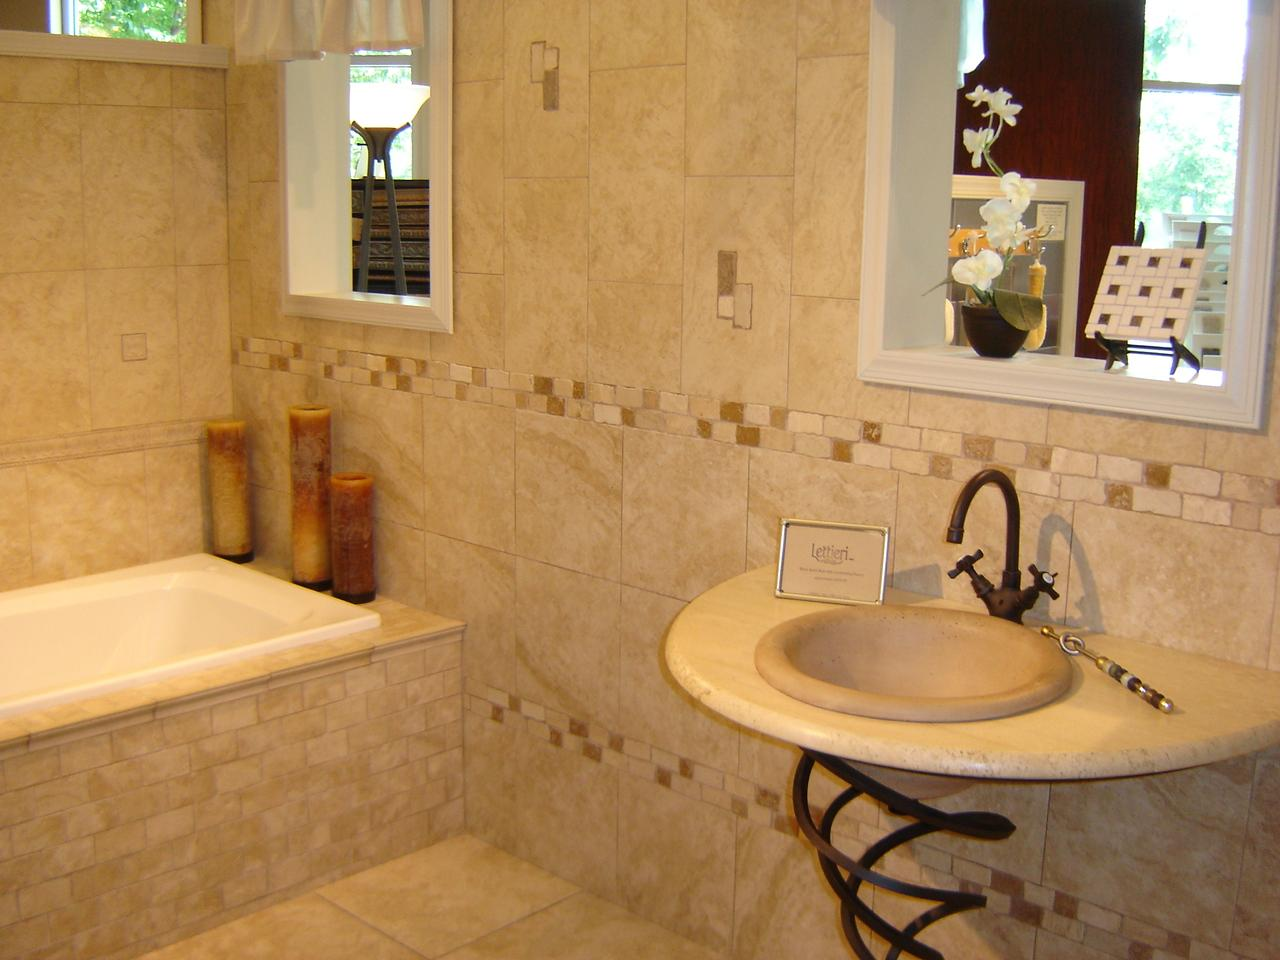 Bathroom tiles designs Photo - 1